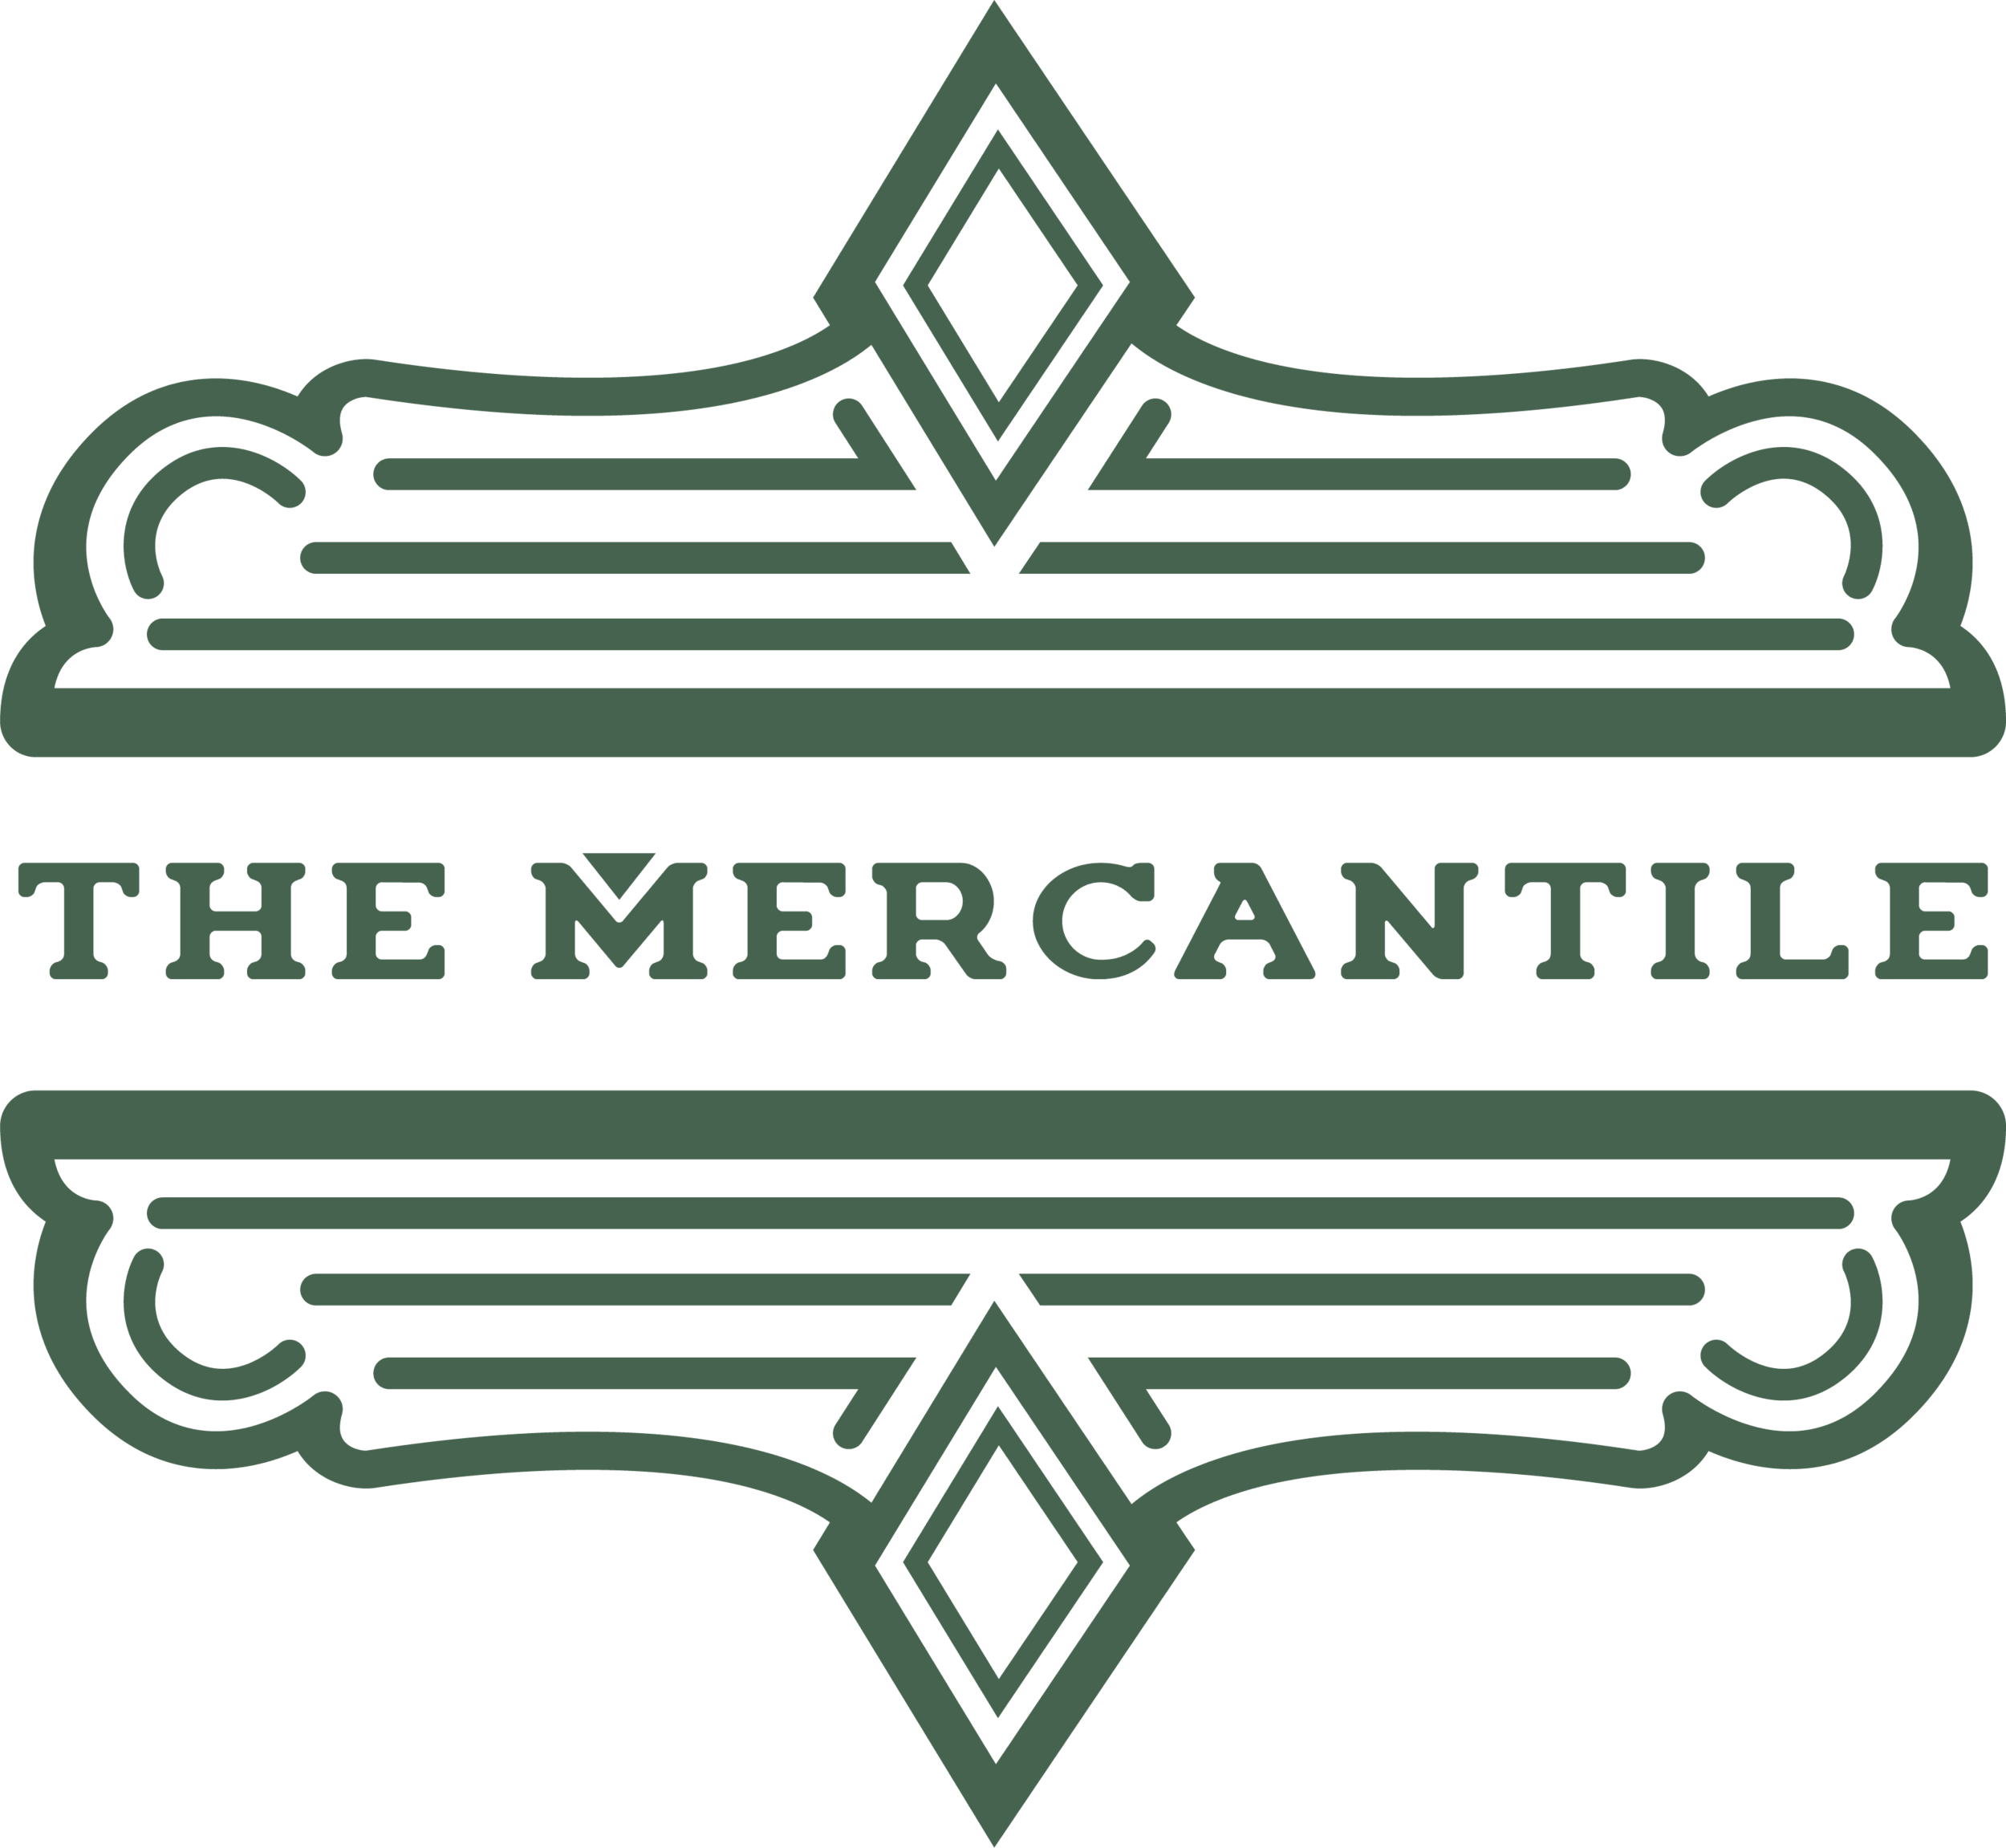 mercantile-full-logo.png